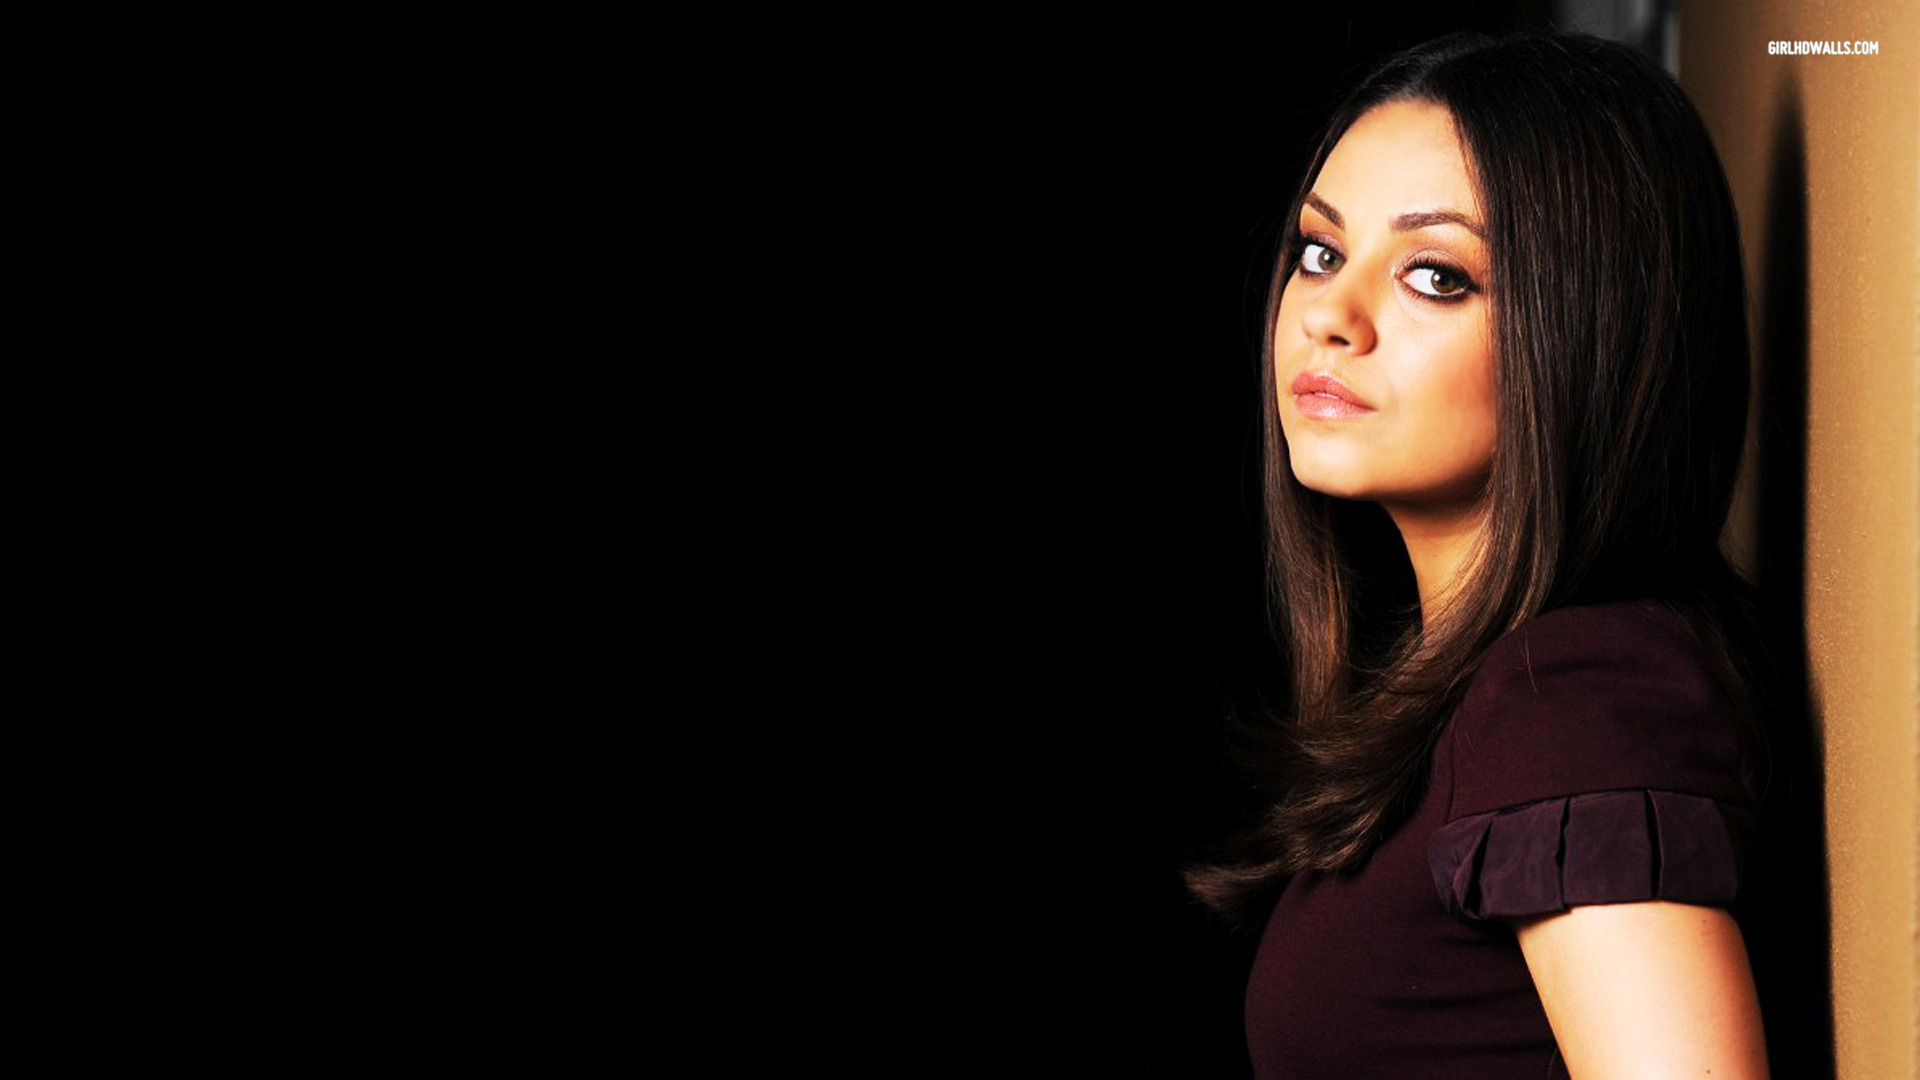 Mila Kunis Wallpapers HD ...